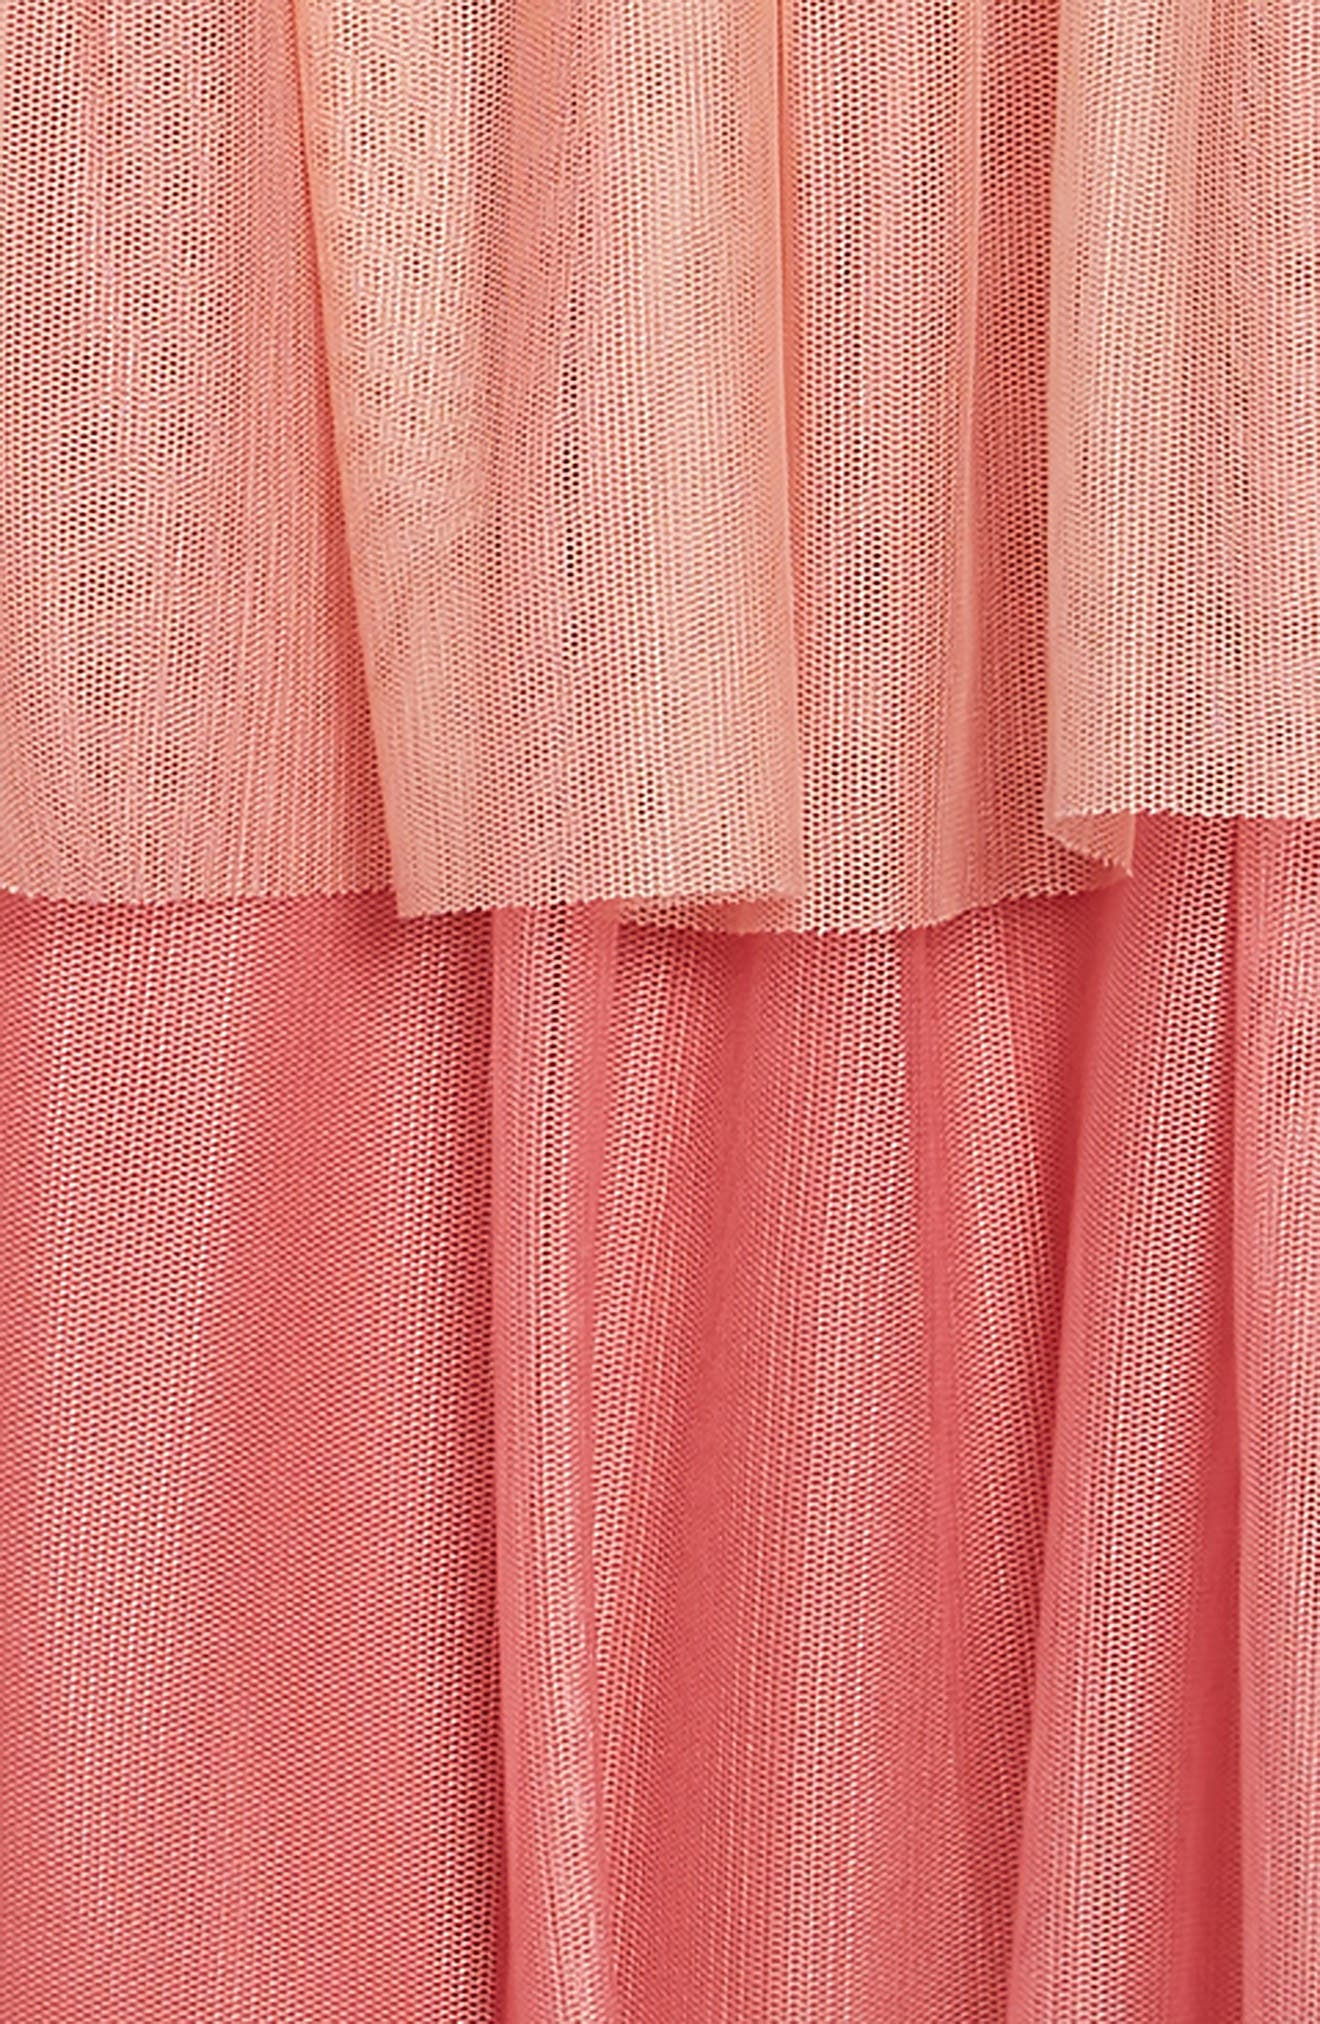 Jersey & Tulle Dress,                             Alternate thumbnail 3, color,                             ROSE PINK OMBRE